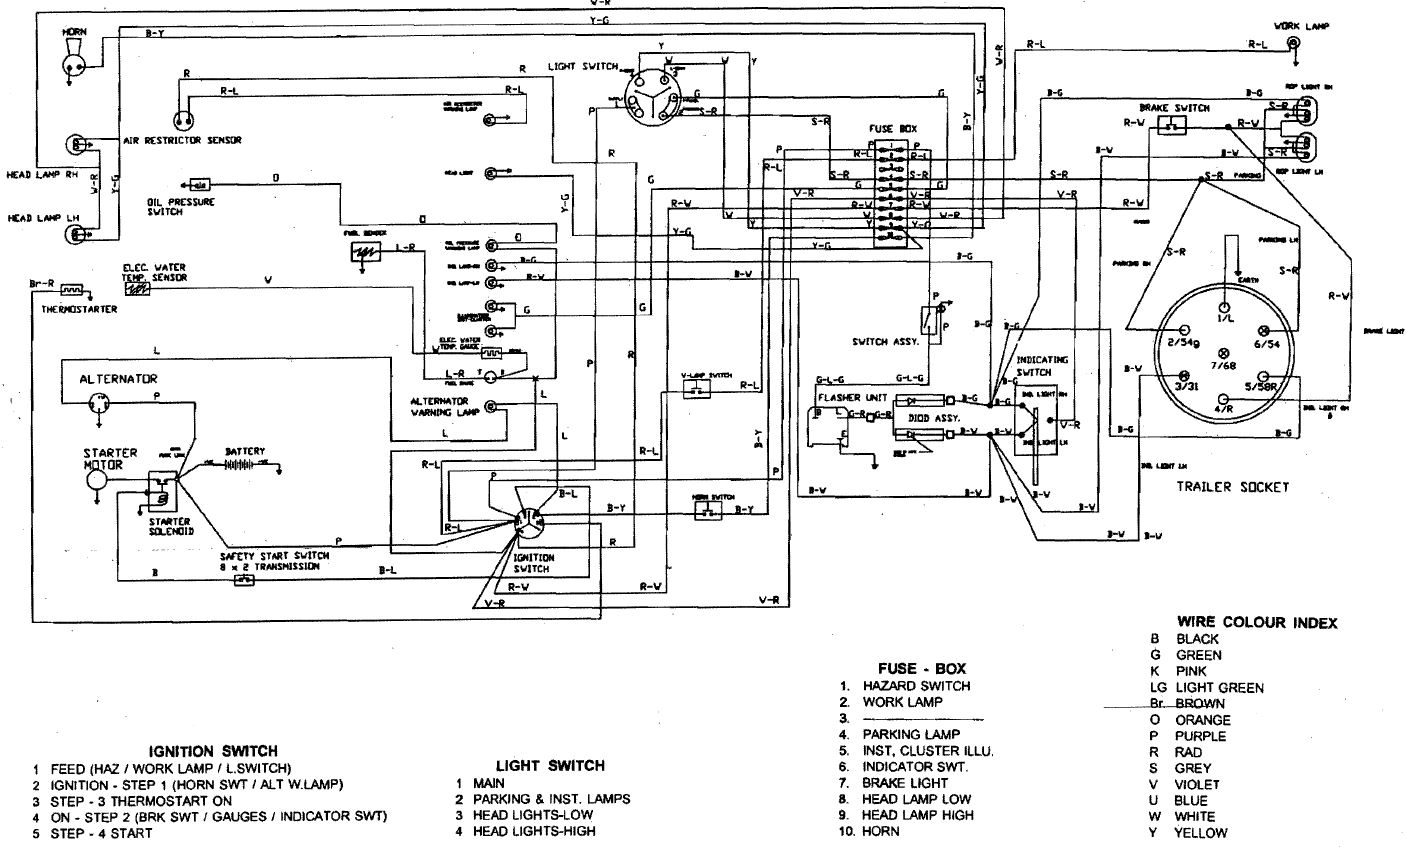 John Deere 401c Wiring Harness - Reading industrial wiring ... on starter switch schematic, fuel gauge schematic, high voltage switch schematic, oil switch schematic, electrical switch schematic, alternator schematic, speed switch schematic, fuel injector schematic, pressure transmitter symbol schematic, transmission schematic, 3 position switch schematic, master cylinder schematic, relay schematic, ignition timing, ignition diagram, fan blade schematic, generator schematic, 3 wire thermocouple wiring schematic, engine schematic, vacuum pump schematic,